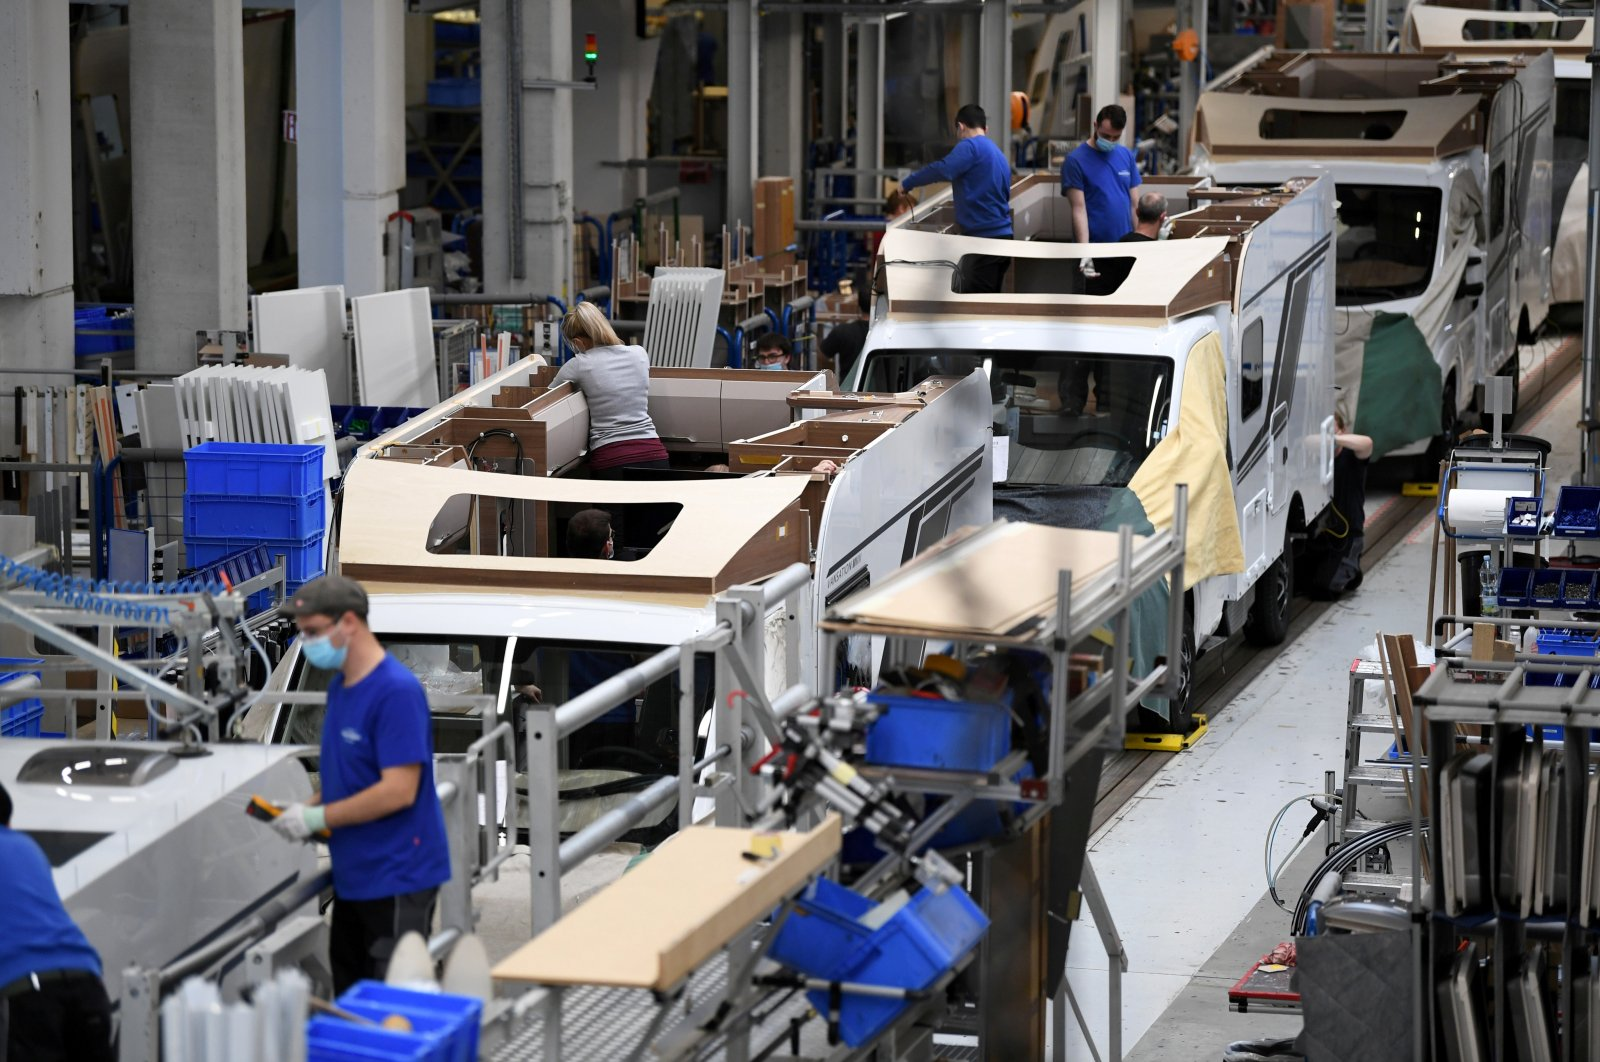 Workers assemble campers at Knaus-Tabbert AG factory in Jandelsbrunn near Passau, Germany, March 16, 2021. (Reuters Photo)